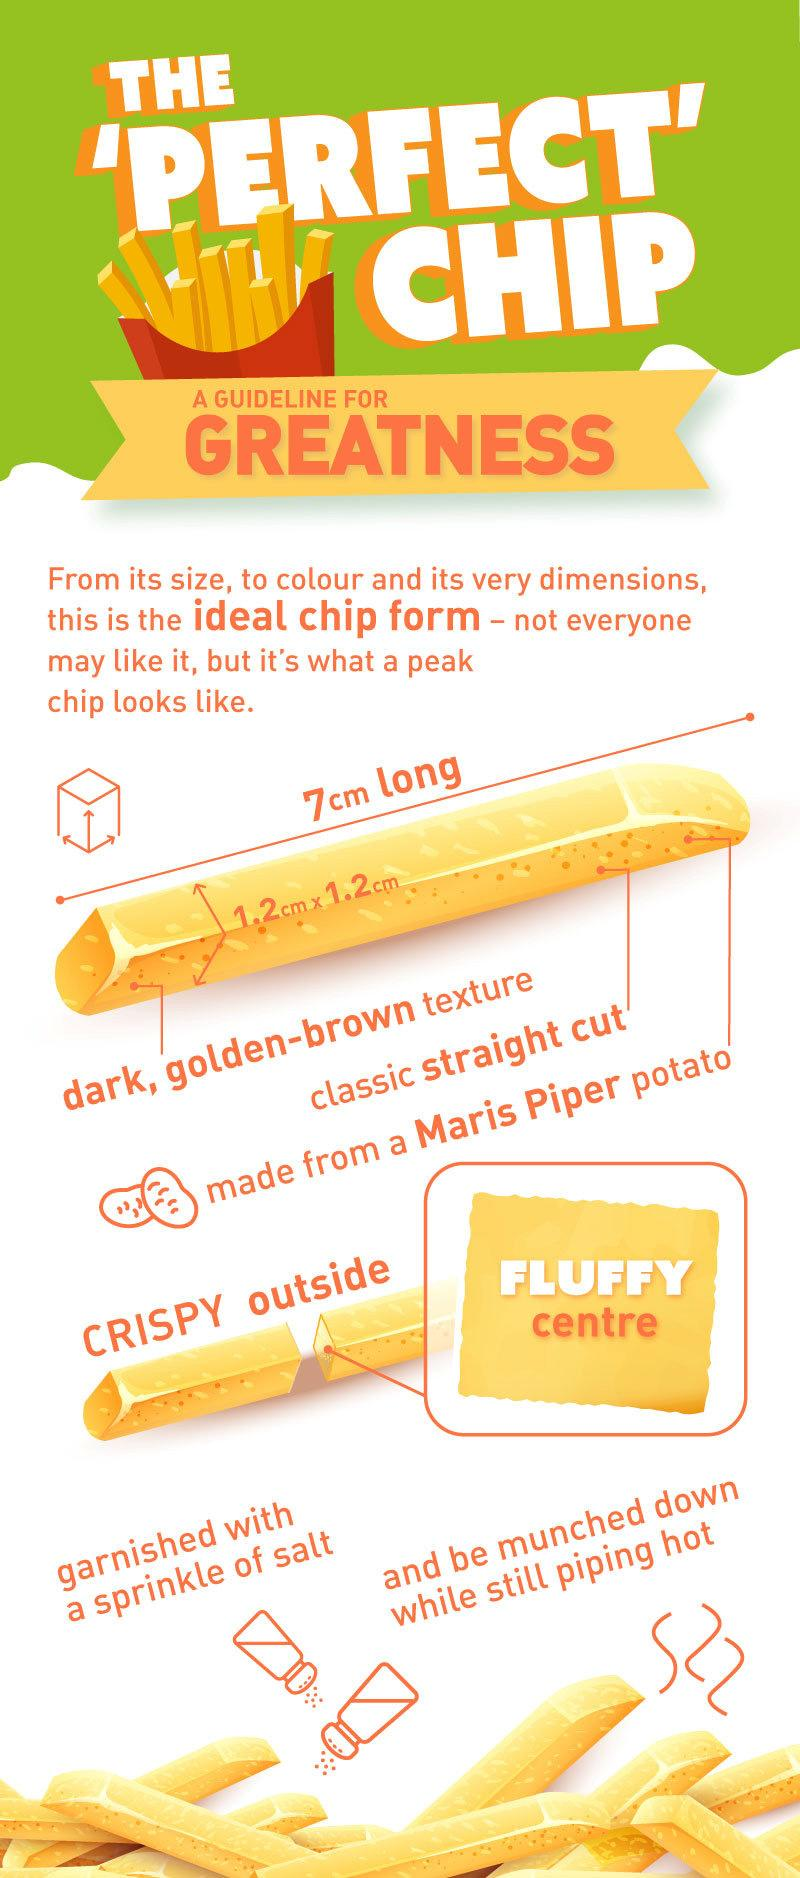 According to a survey of 2,000 adults by the Food Advisory Board, the perfect chip should be precisely 7cm long. [Photo: SWNS]